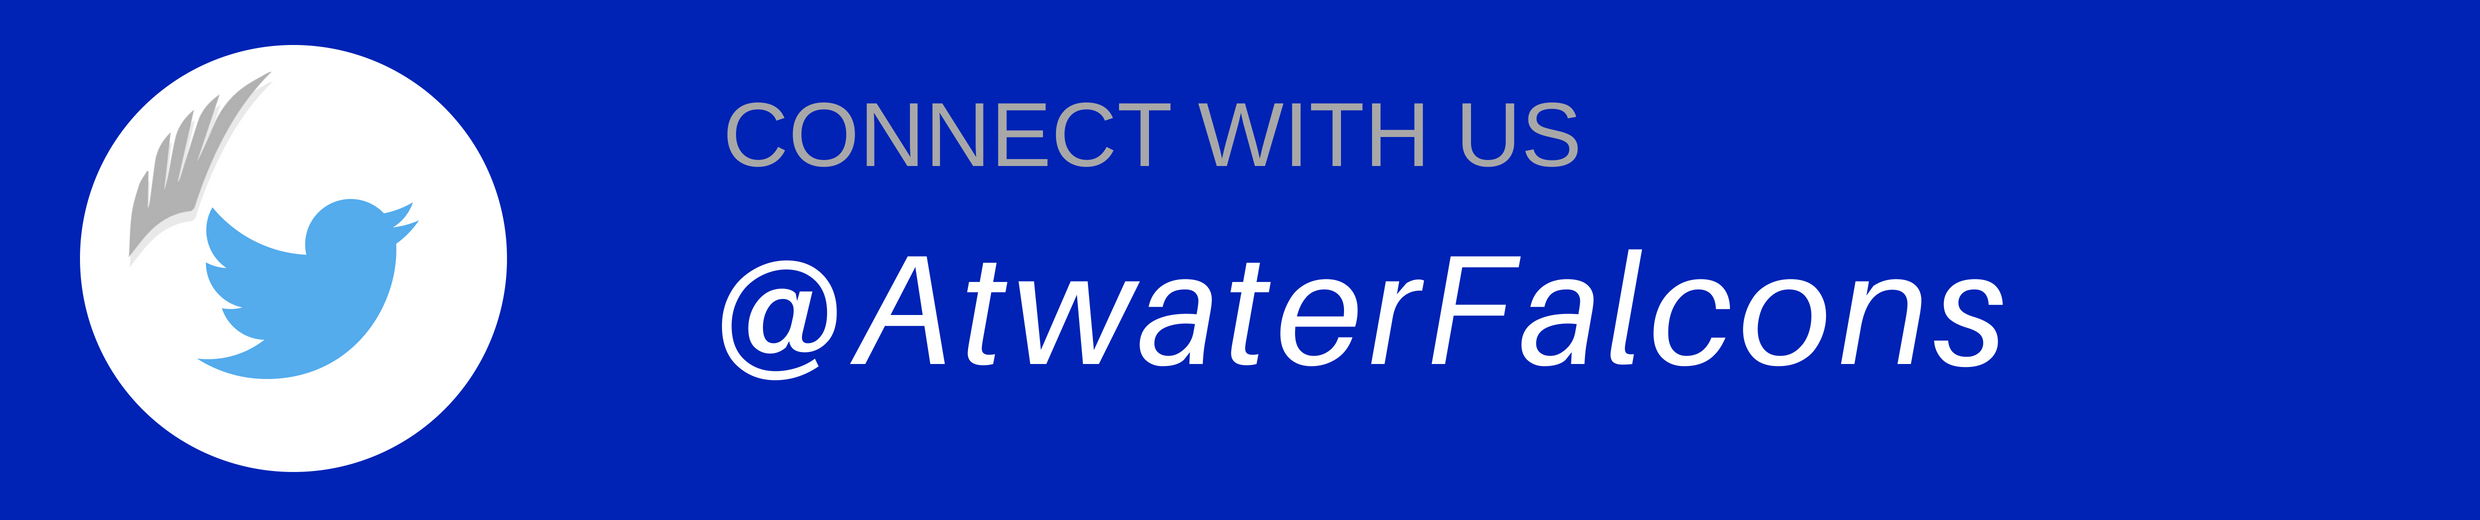 Connect with Us @AtwaterFalcons